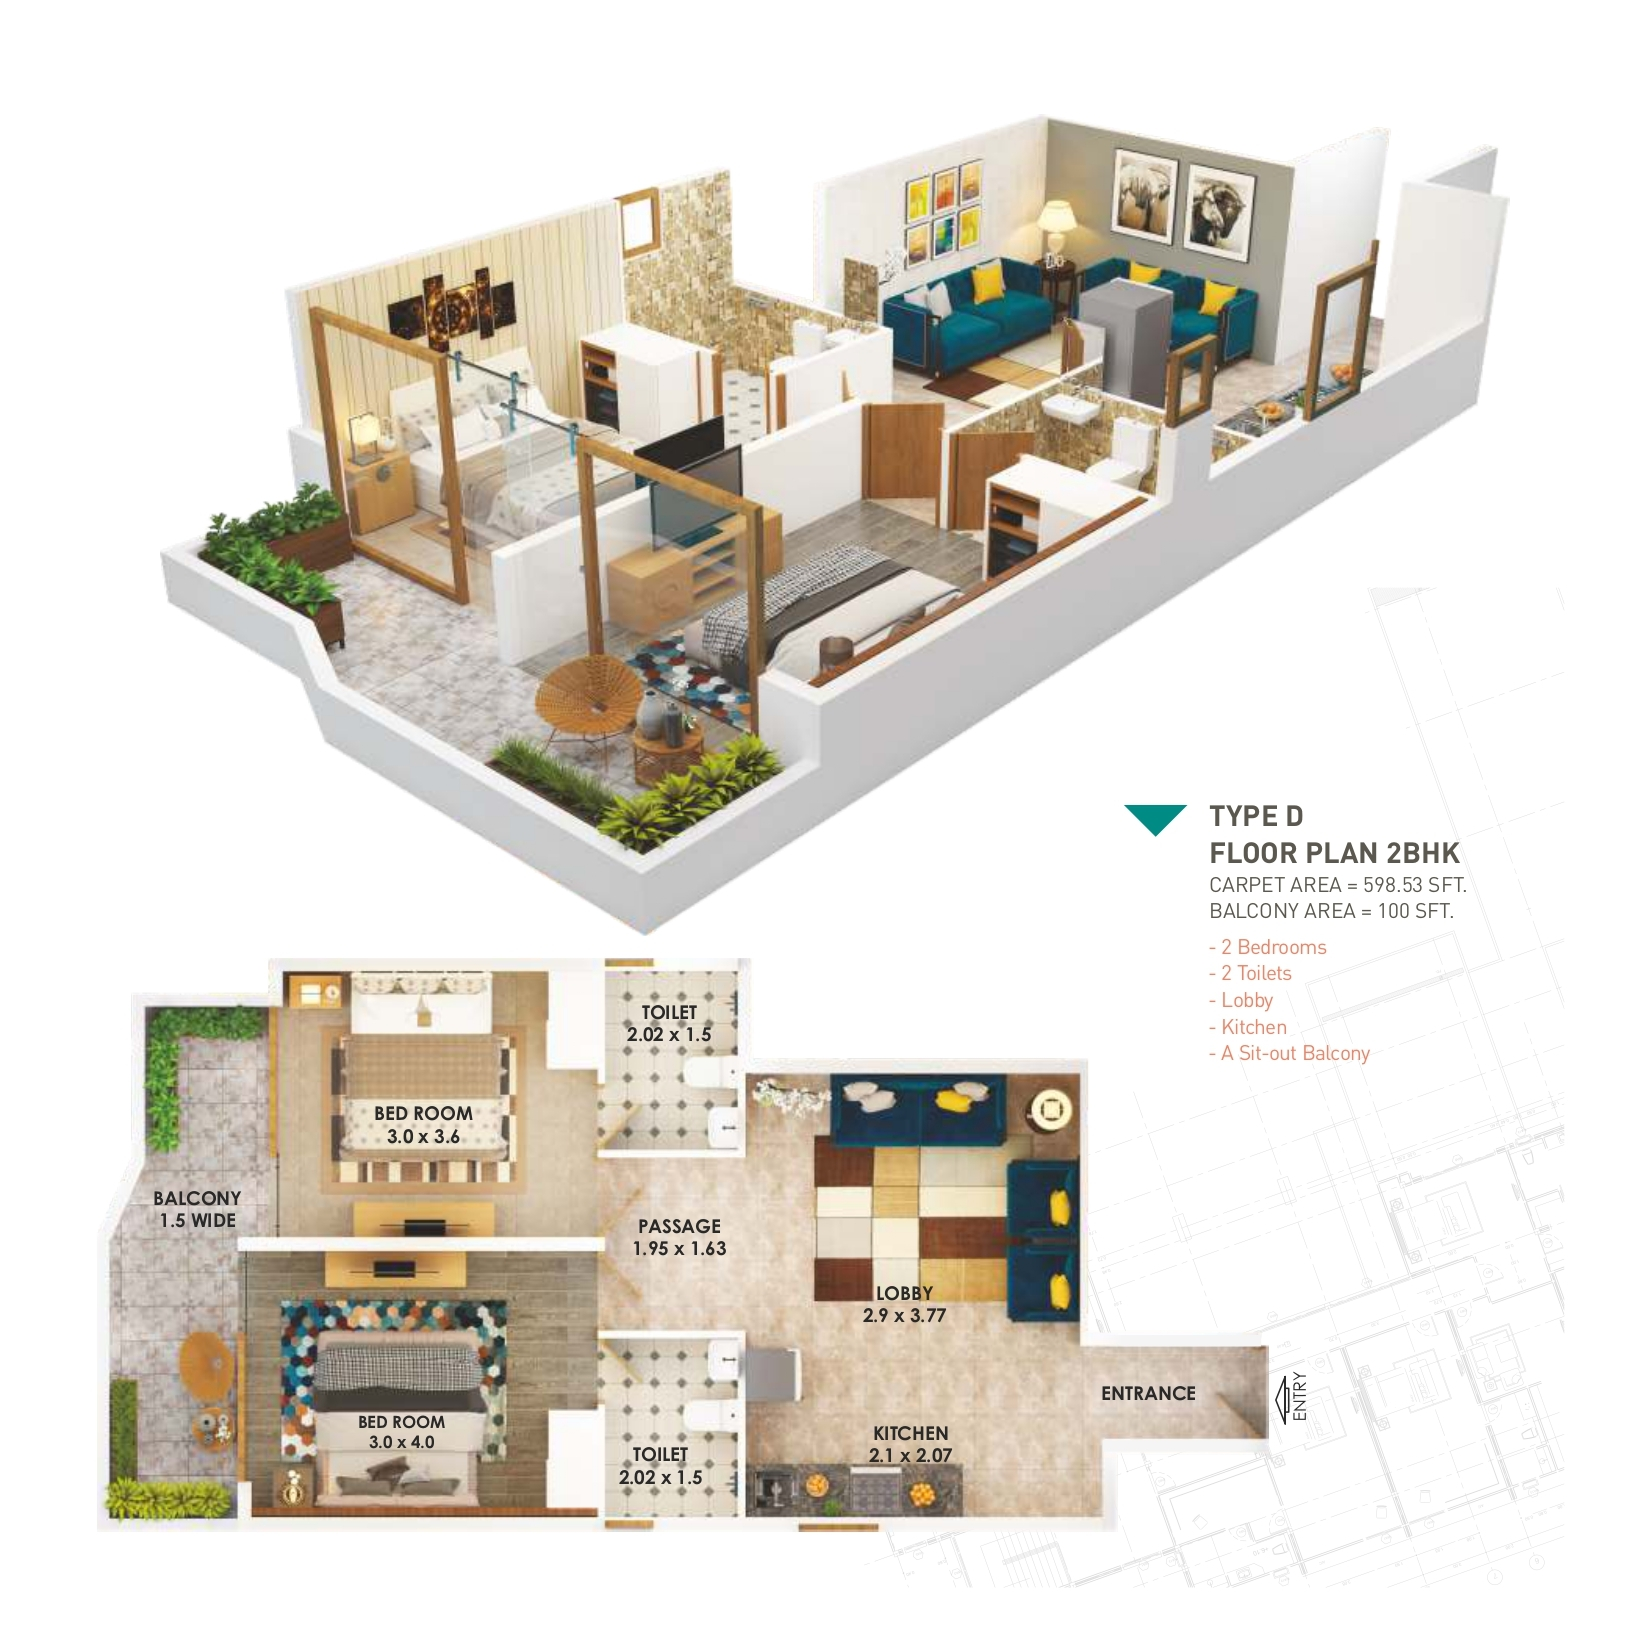 Pyramid Heights 2BHK Type D